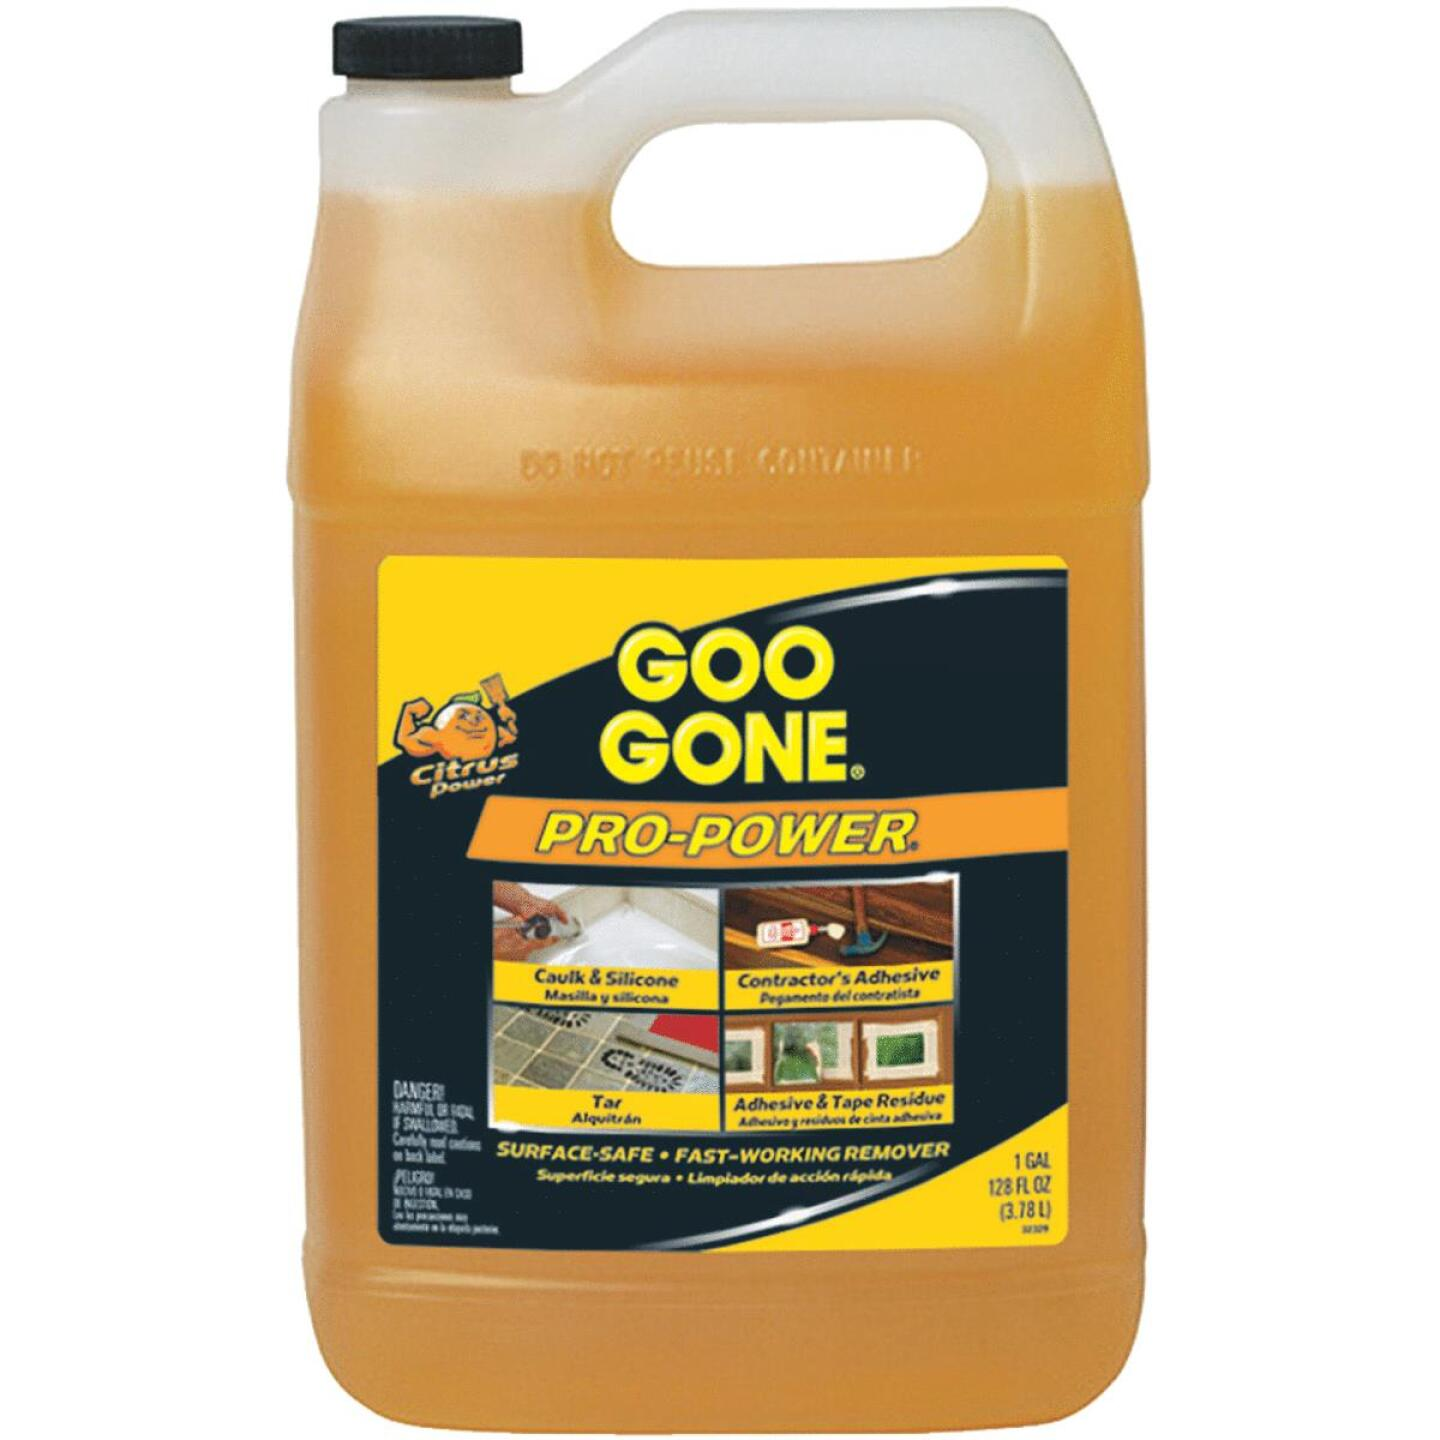 Goo Gone 1 Gal. Pro-Power Adhesive Remover Image 354